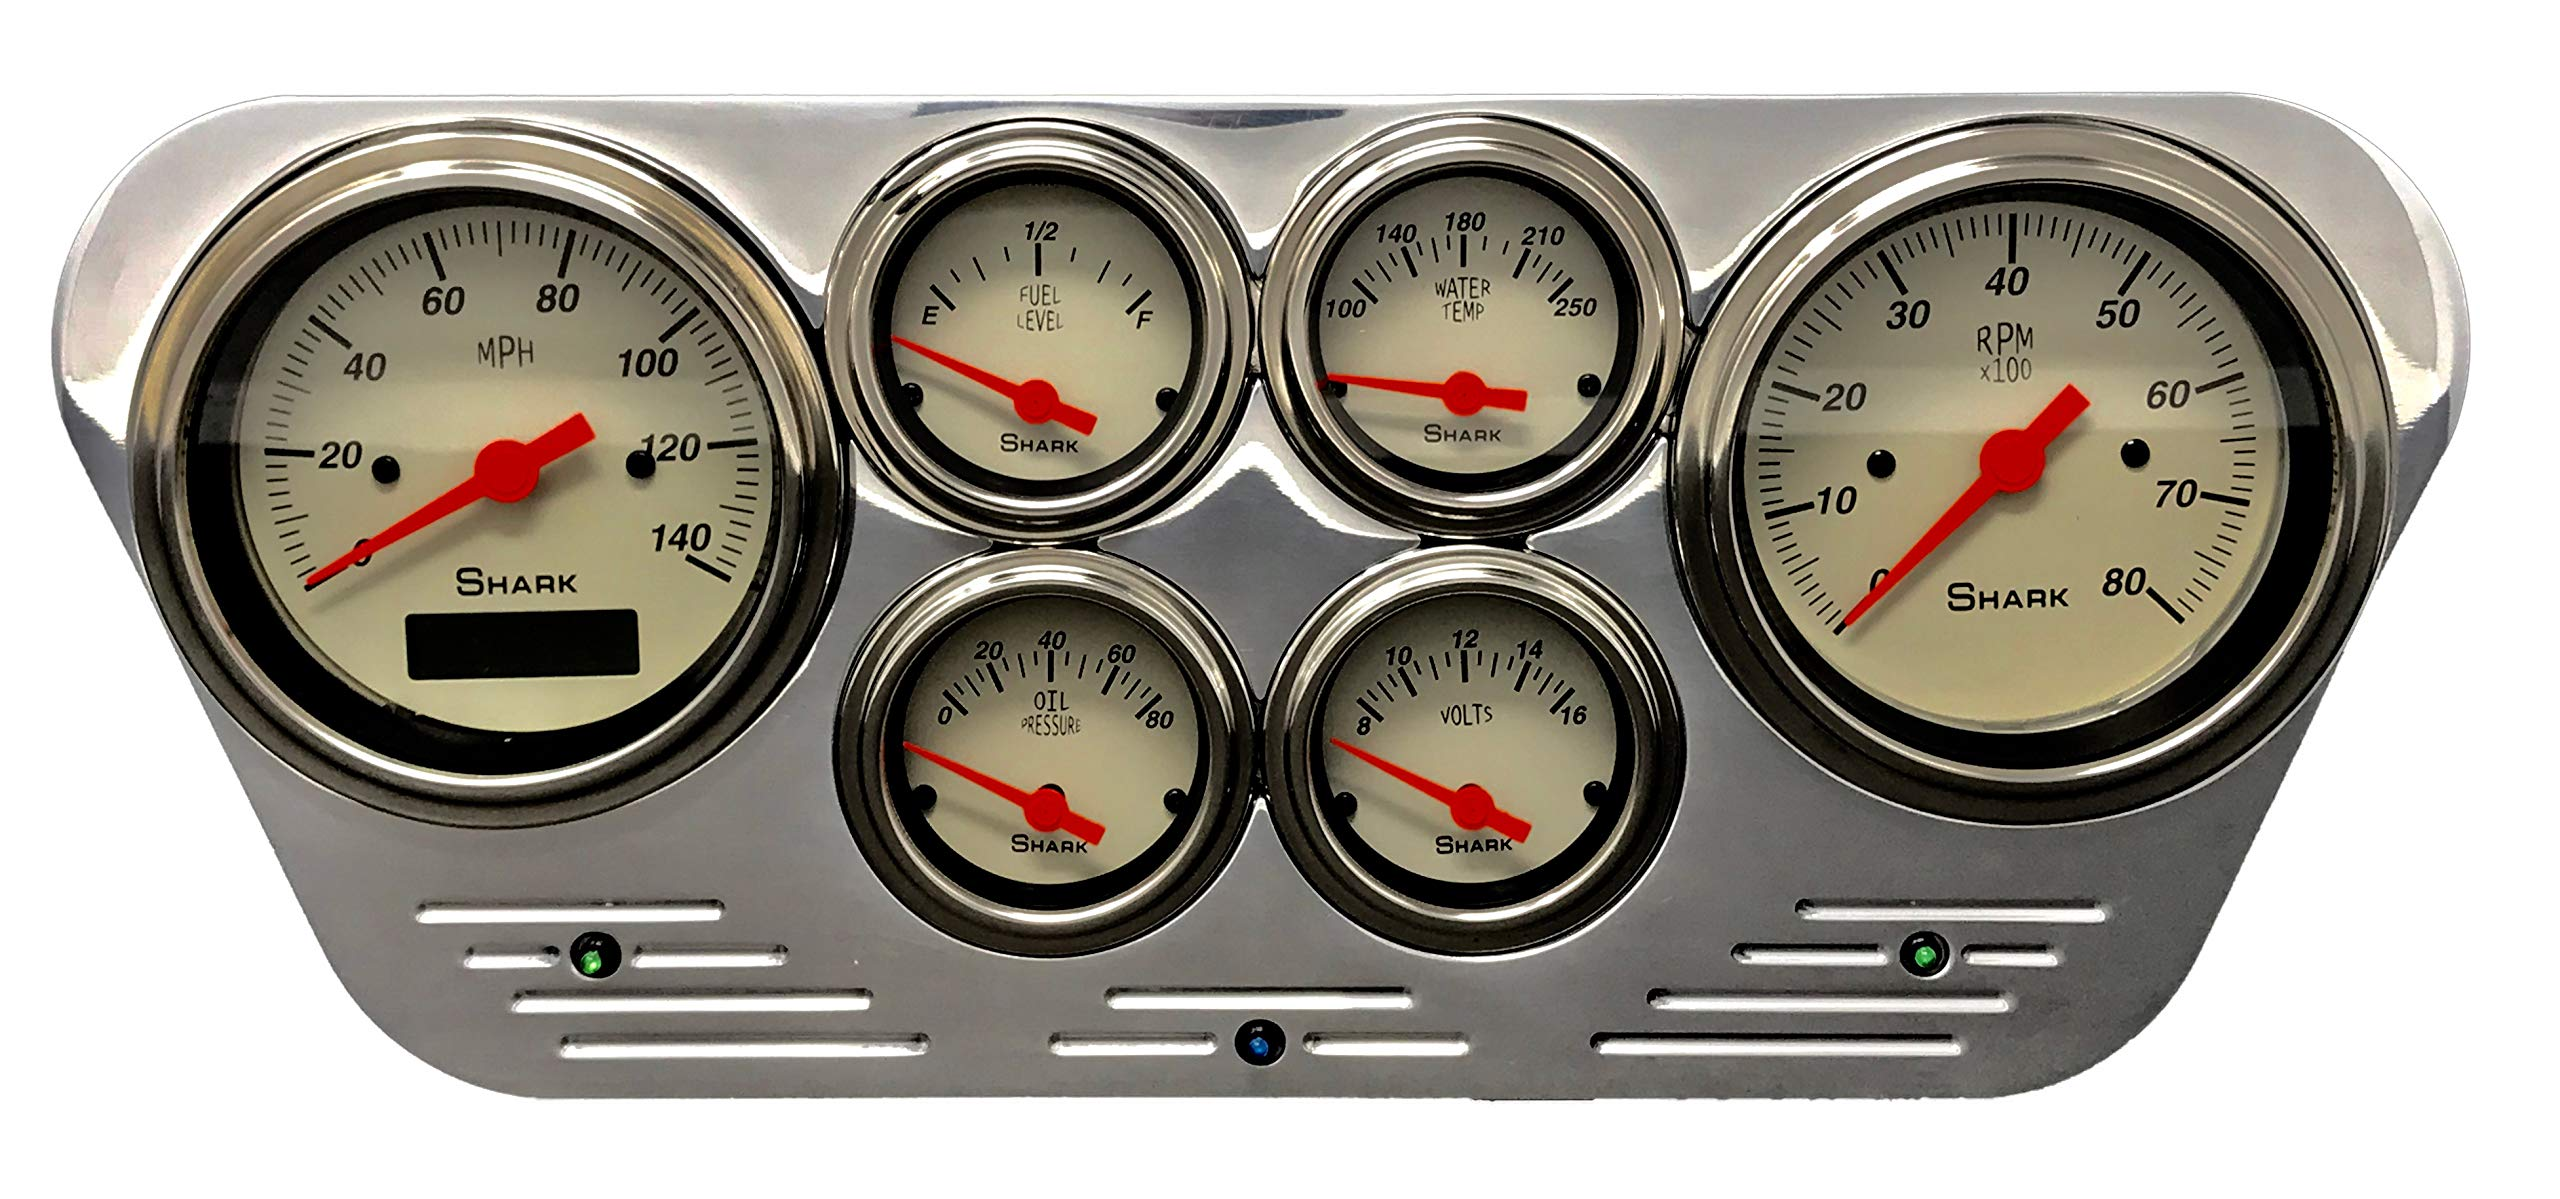 Dolphin Gauges Compatible with 1953 1954 1955 Ford Truck 6 Gauge Dash Cluster Panel Set Programmable Shark by Dolphin Gauges